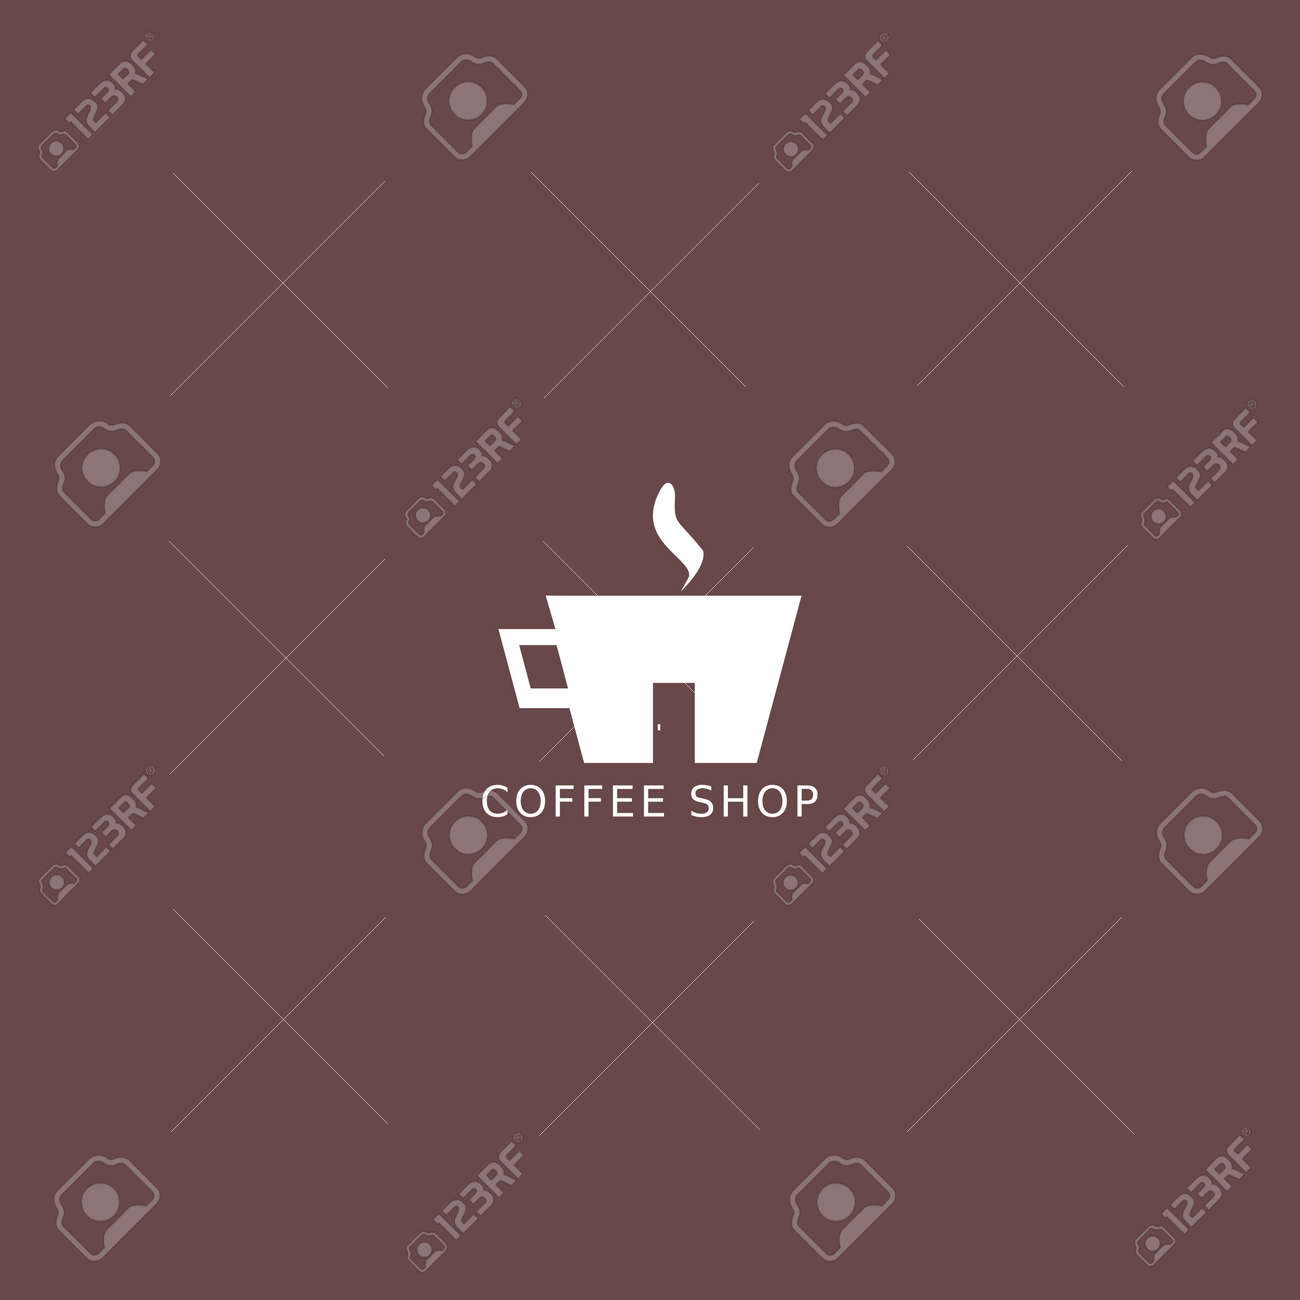 Coffee Shop Logo Simple Natural Home Logo Design Cafe Or Restaurant Royalty Free Cliparts Vectors And Stock Illustration Image 153250979